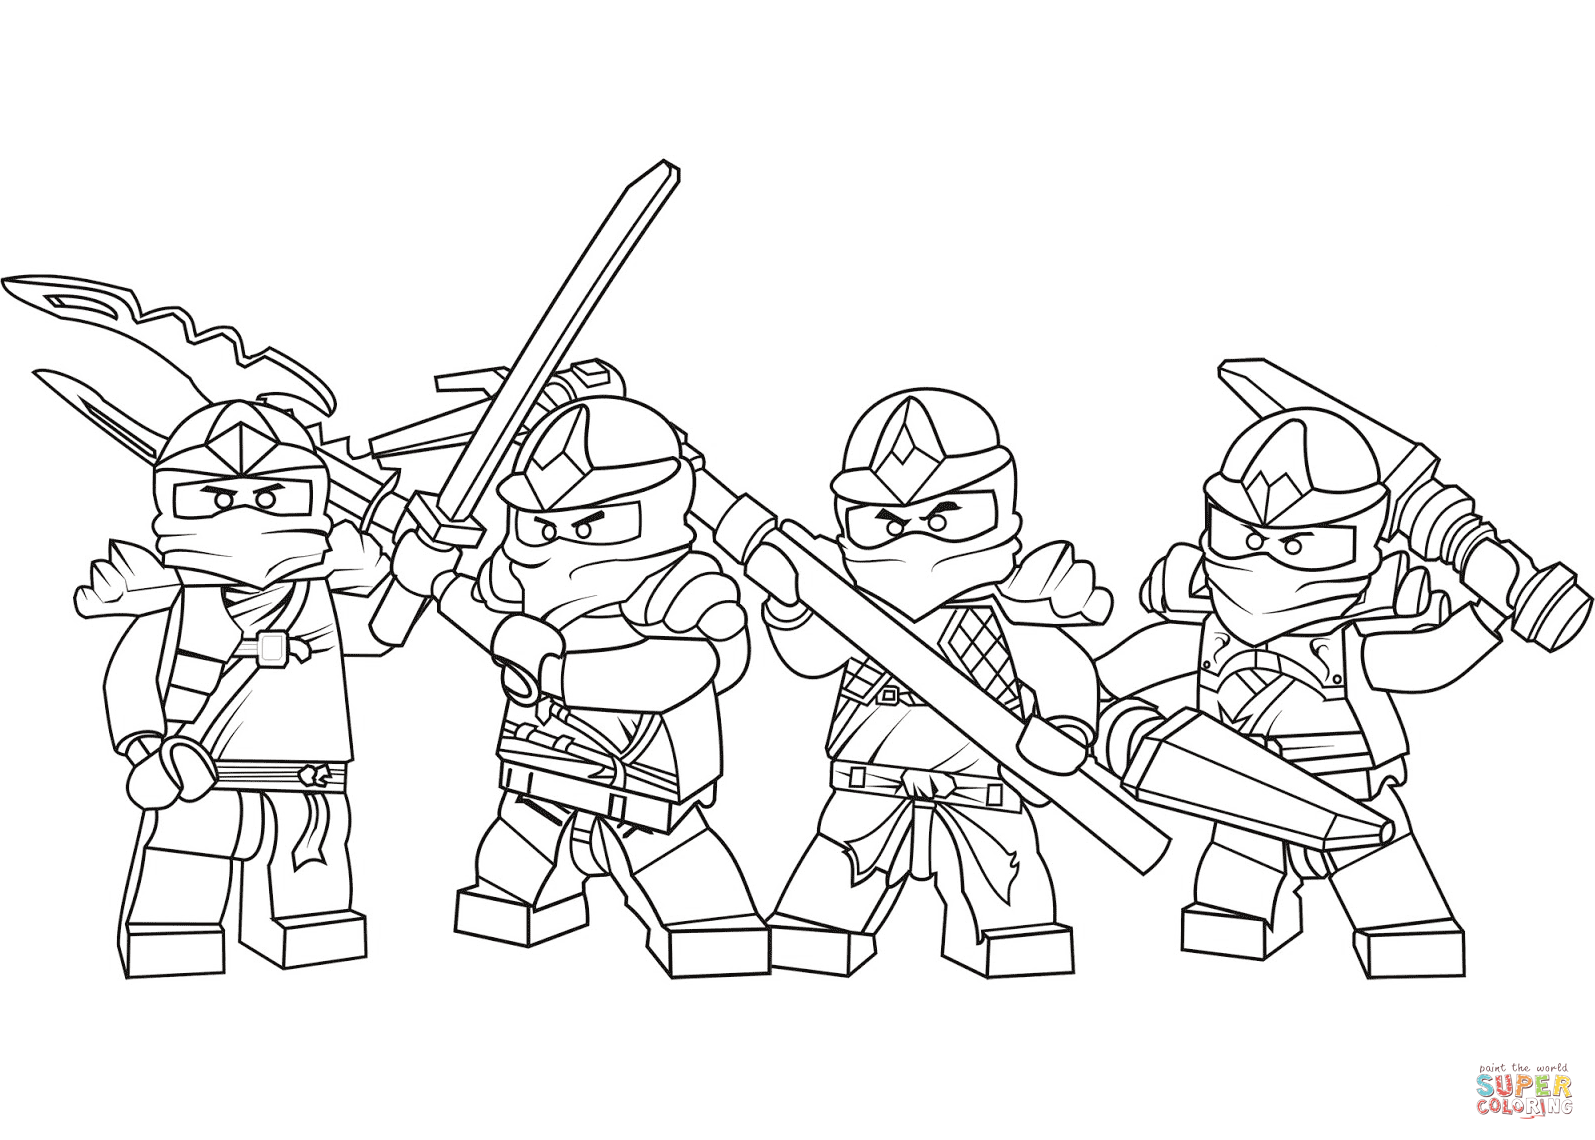 Ninjago Black And White Coloring Pages.